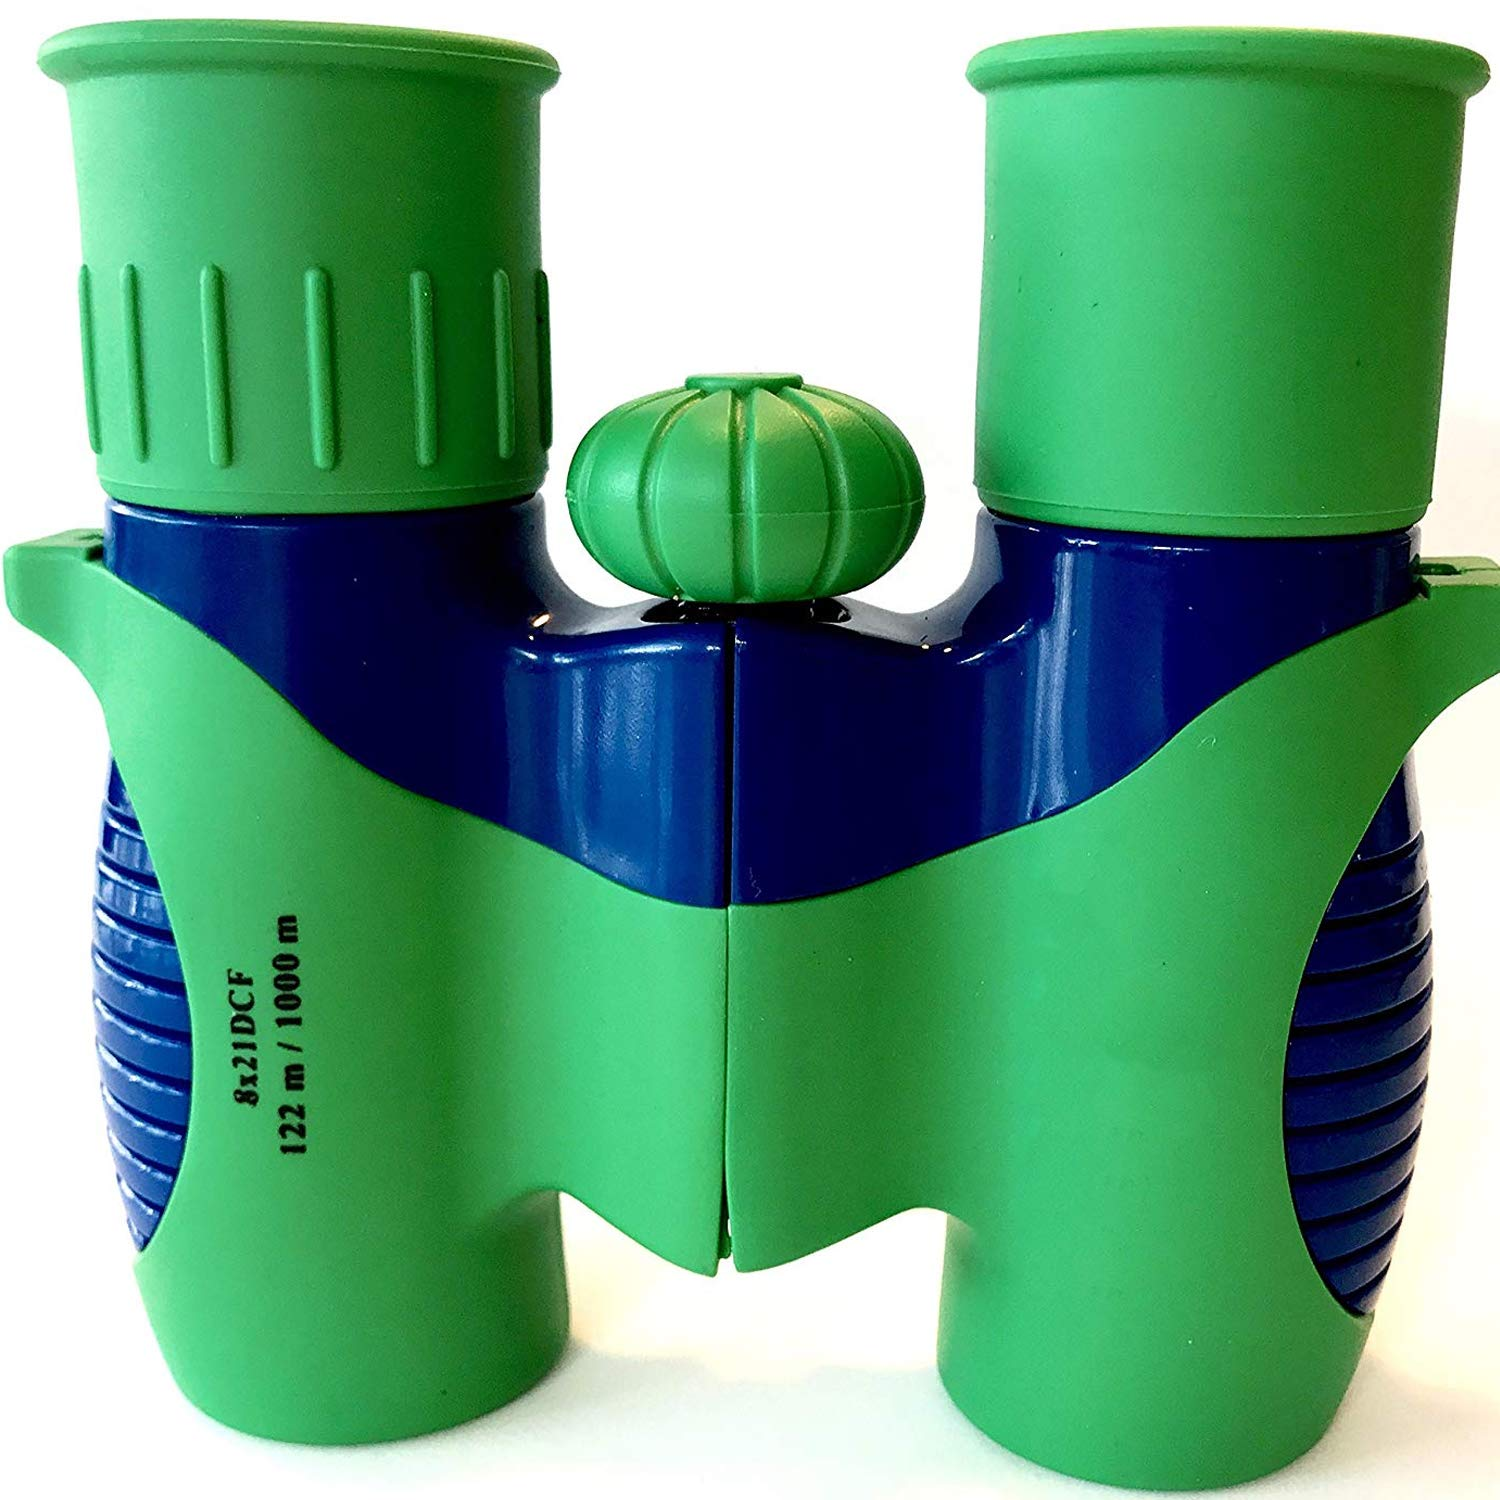 Kids Binoculars 8x21 - Shock Proof Compact Binoculars Toy for Boys and Girls with High-Resolution Real Optics - Bird Watching, Travel, Safari, Adventure, Outdoor Fun by THE SAFETY ZONEY